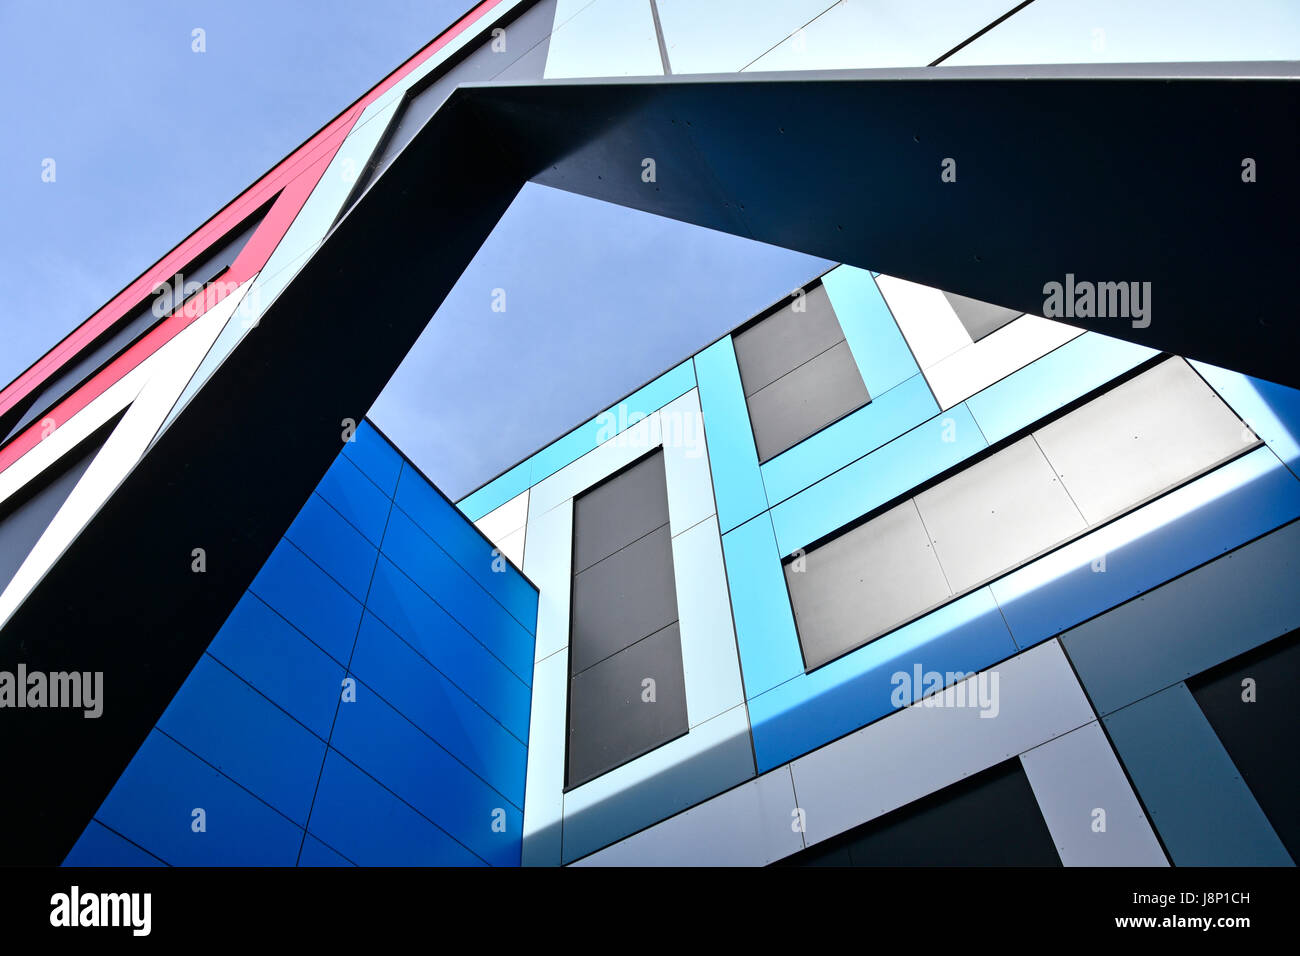 Modern architecture building & structure details form abstract pattern shapes colour triangles rectangles and - Stock Image